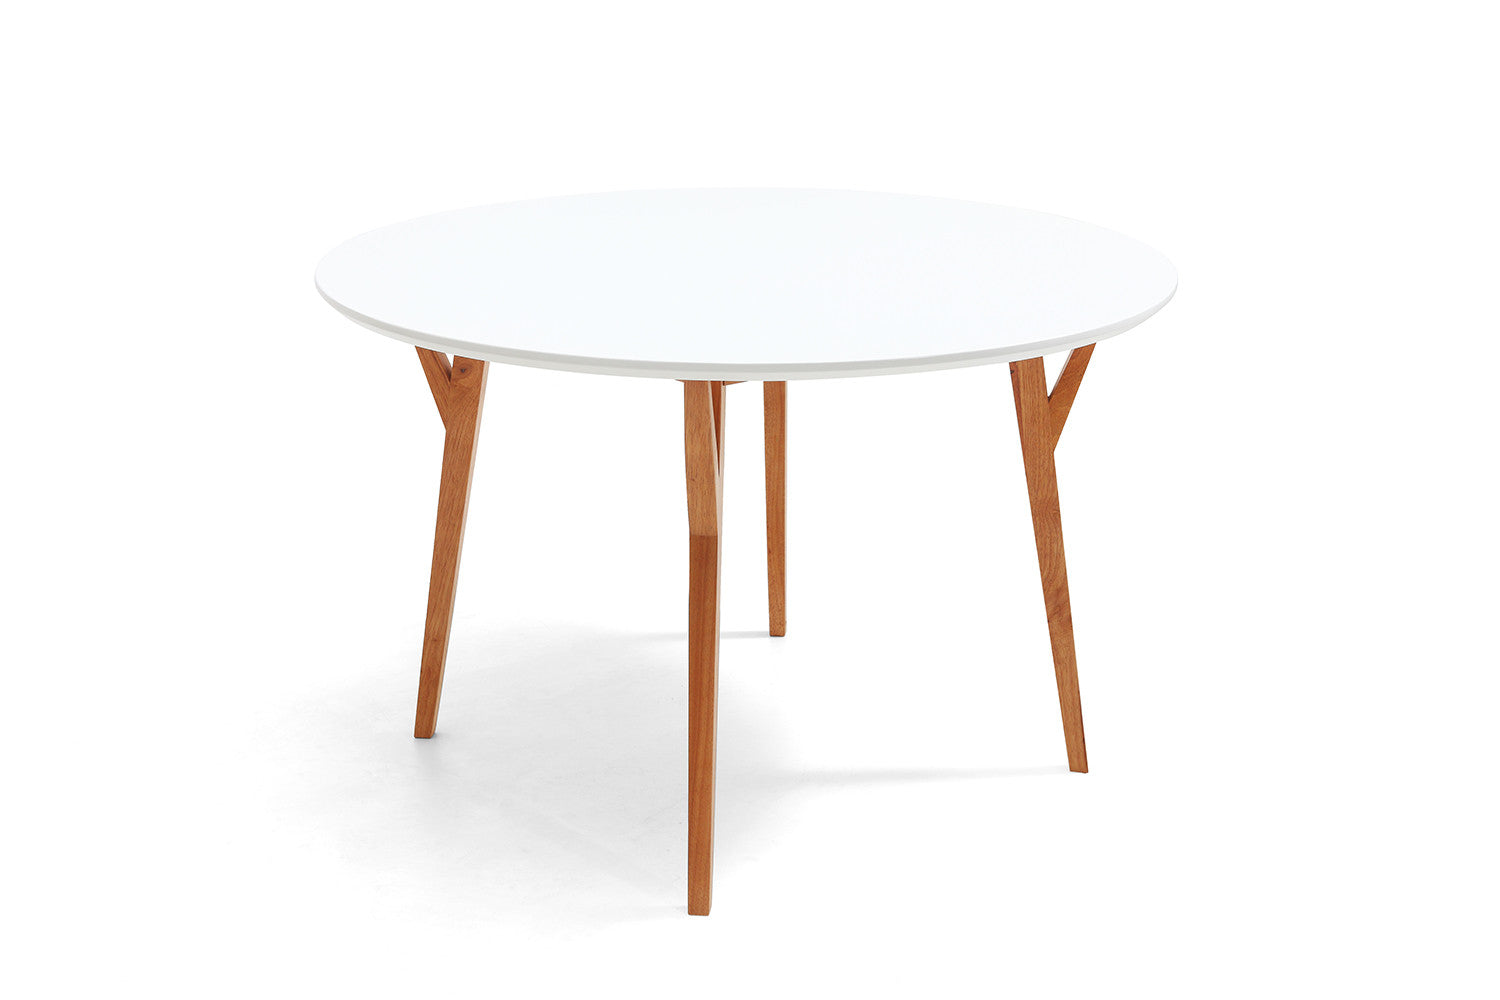 Table de salle manger ronde design scandinave moesa for Table de salle a manger blanc design